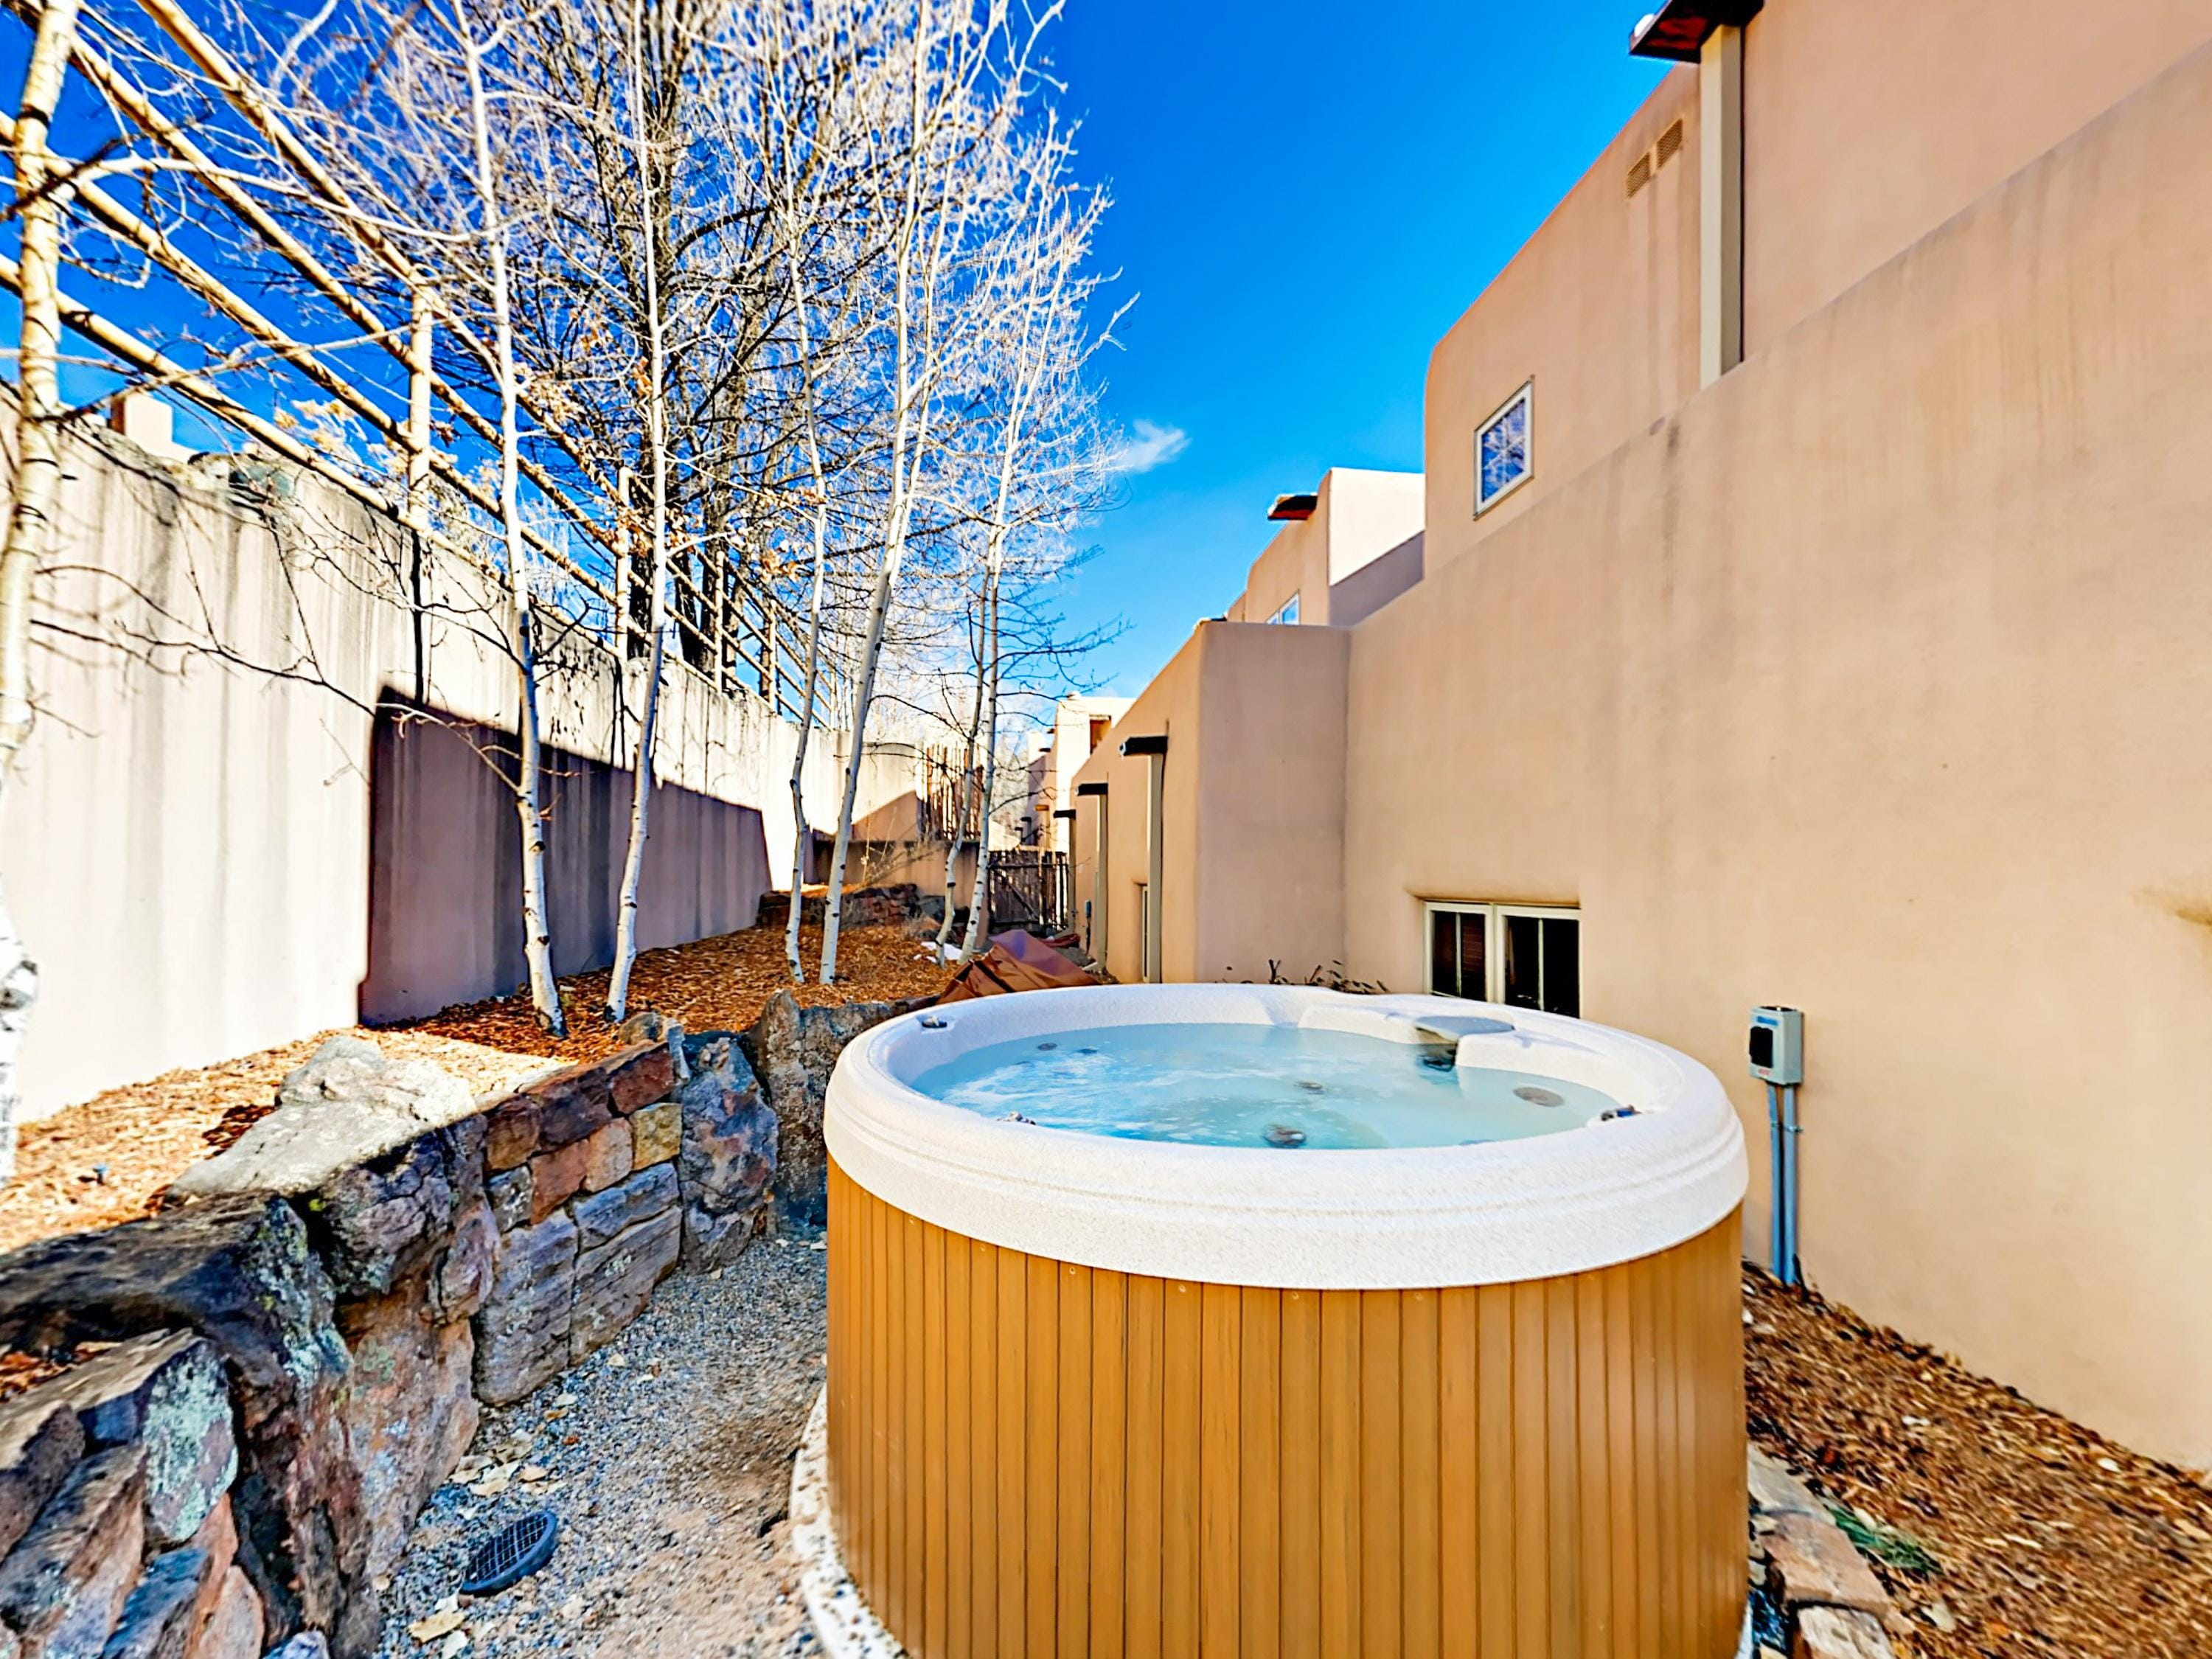 Enjoy a luxuriating soak in the hot tub.